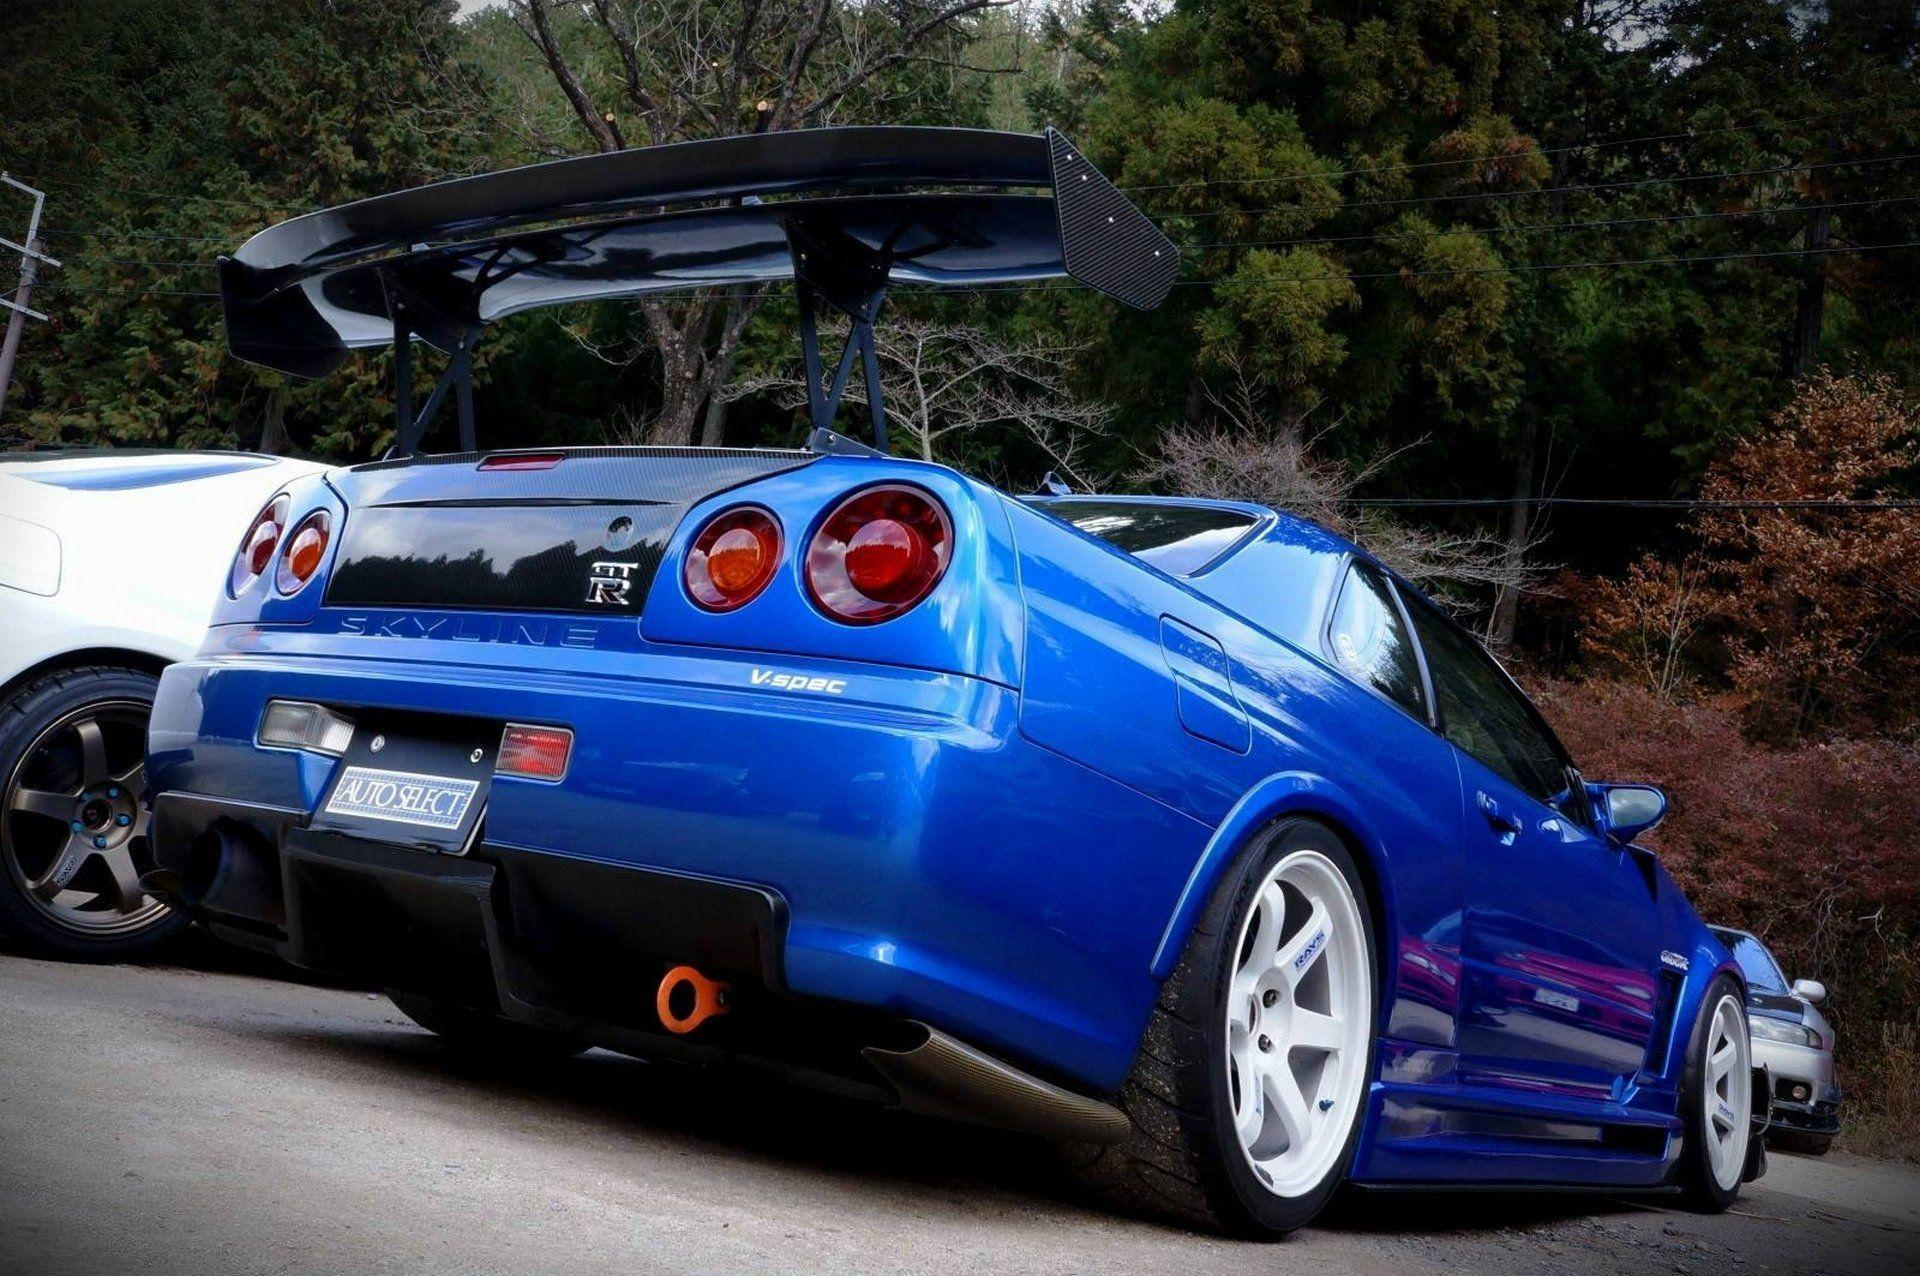 10 Nissan Skyline R34 HD Wallpapers | Backgrounds - Wallpaper Abyss